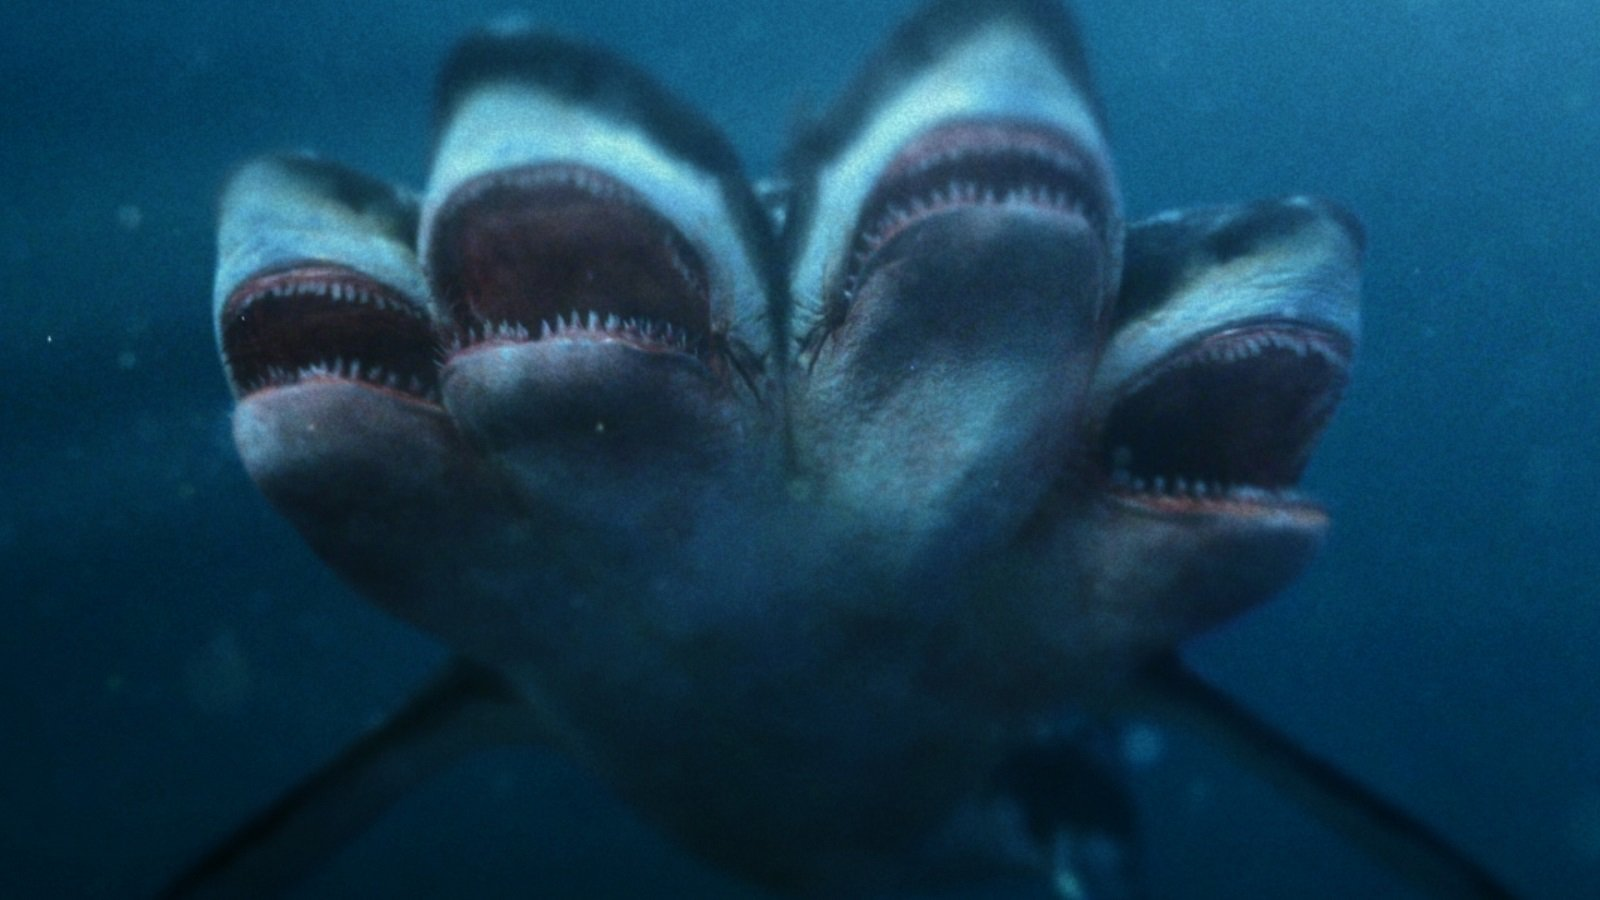 Three headed shark